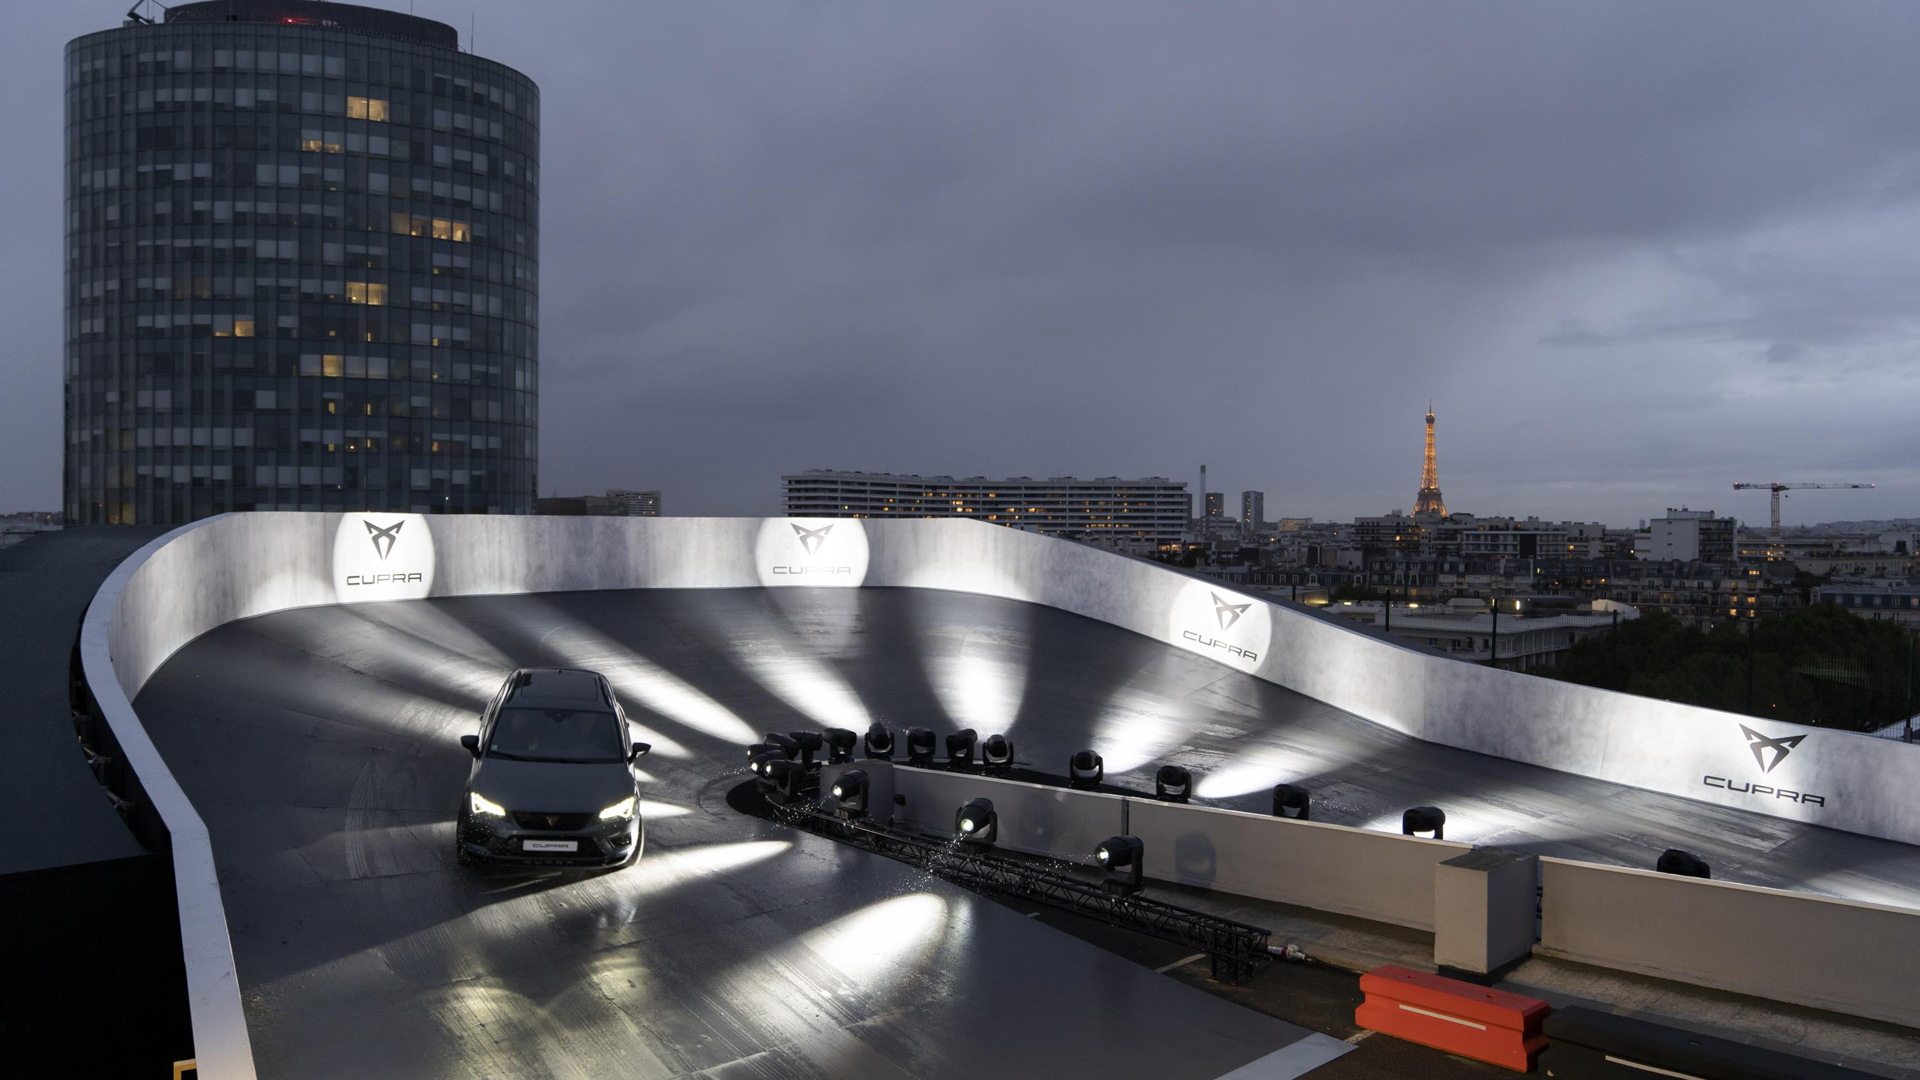 Cupra's rooftop racetrack in the heart of Paris